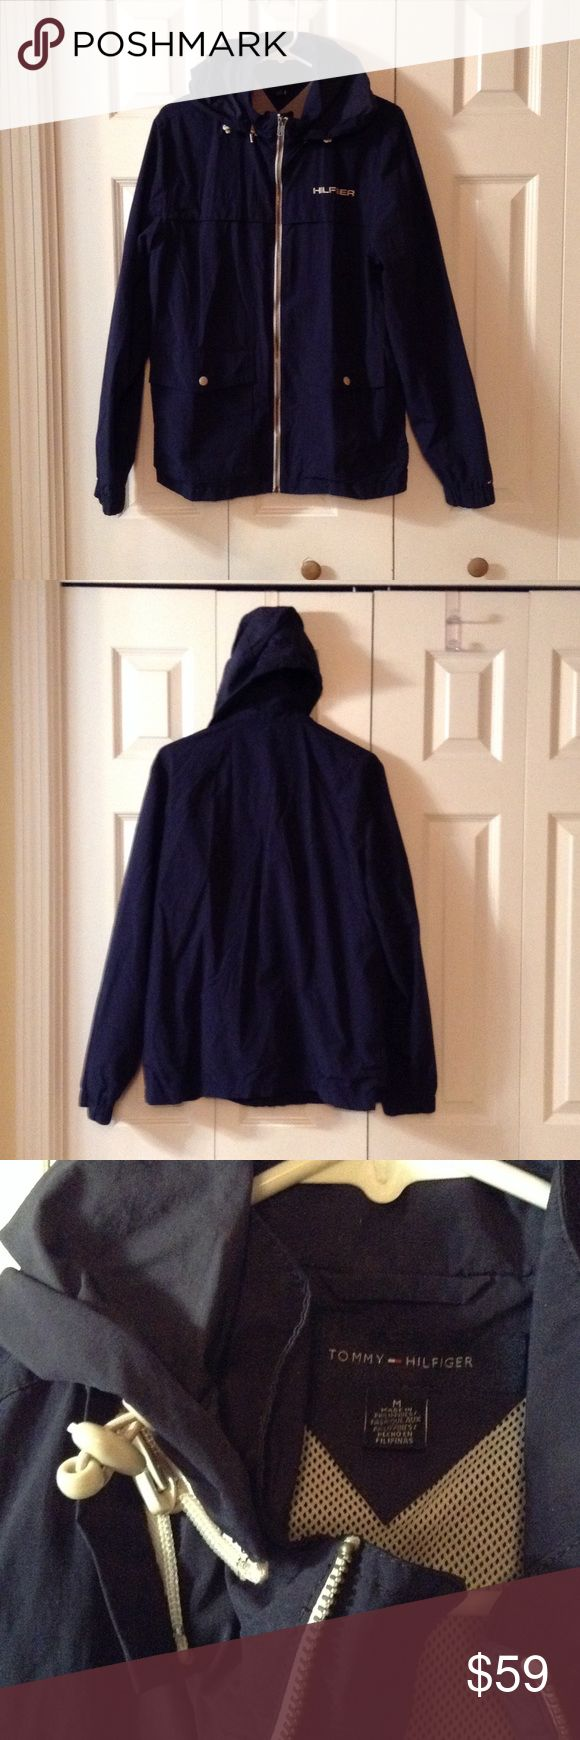 Tommy Hilfiger Men's Water Resistant Windbreaker Tommy Hilfiger Men's Full-zip Water Resistant Yacht  Windbreaker Jacket. Fold away hood, snap closure front pockets, mesh interior.  Color: Navy Blue. Excellent condition. Tommy Hilfiger Jackets & Coats Windbreakers